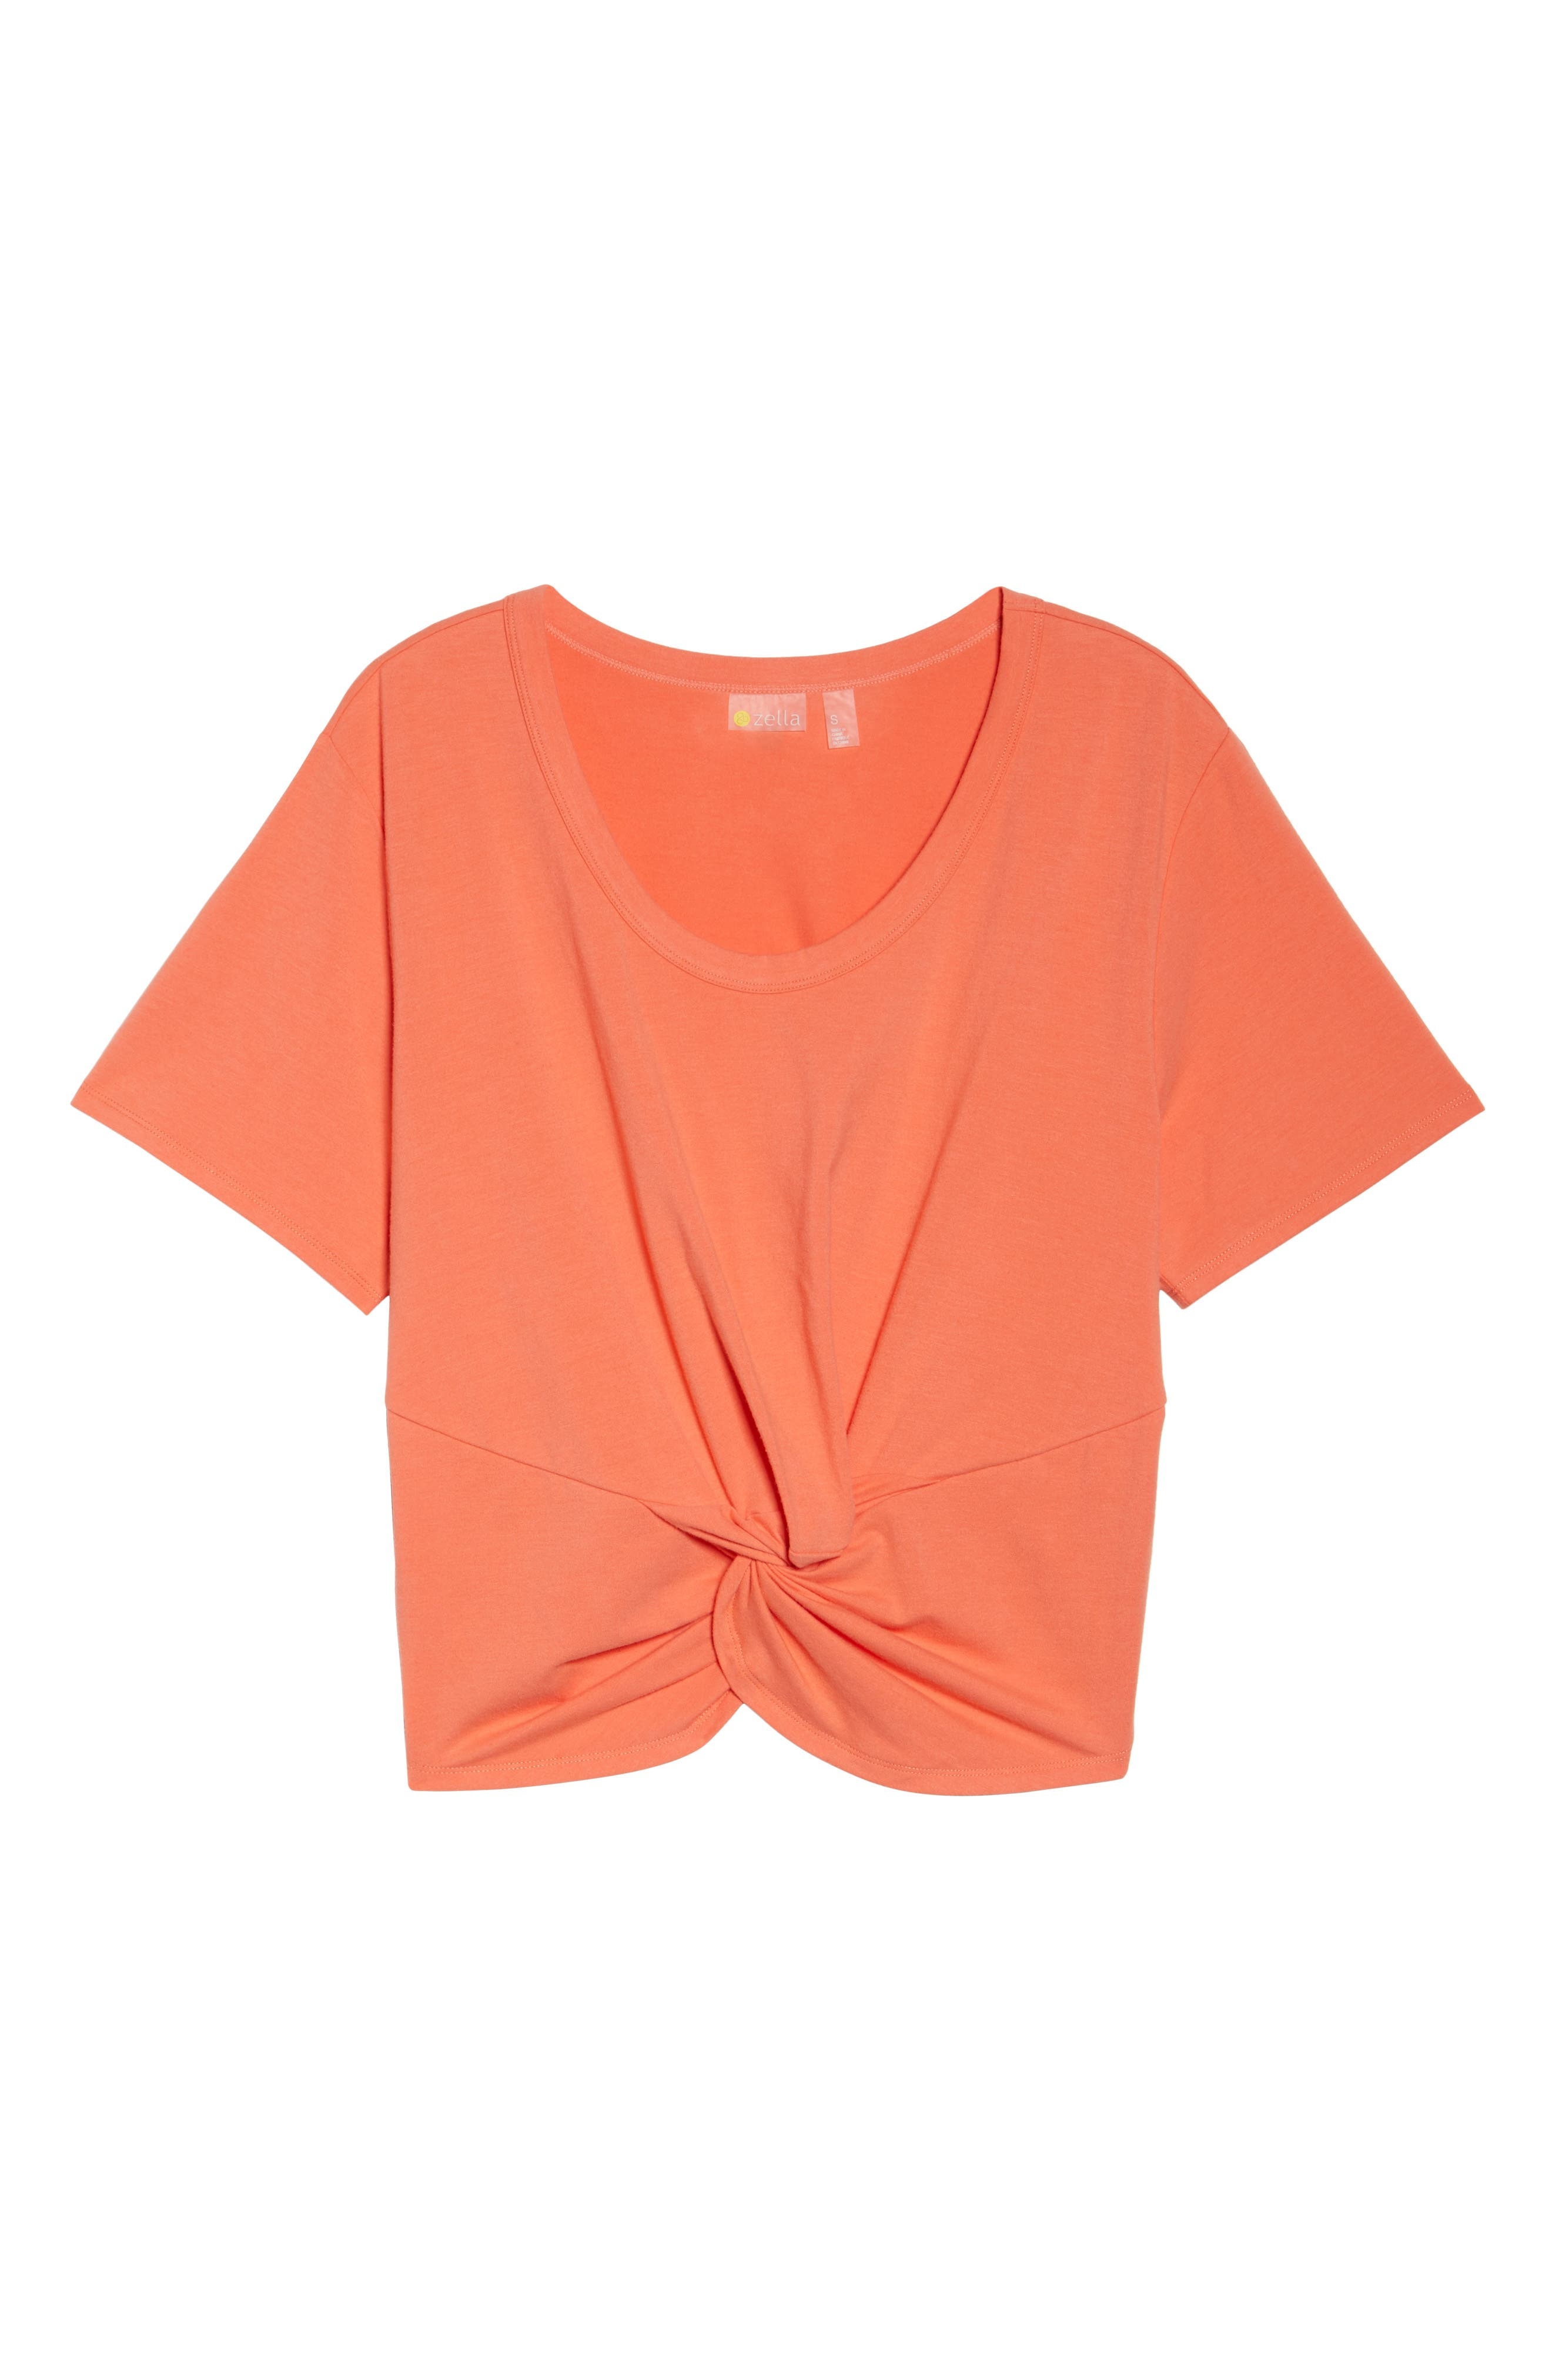 Knotty Crop Tee,                             Alternate thumbnail 7, color,                             Coral Reef